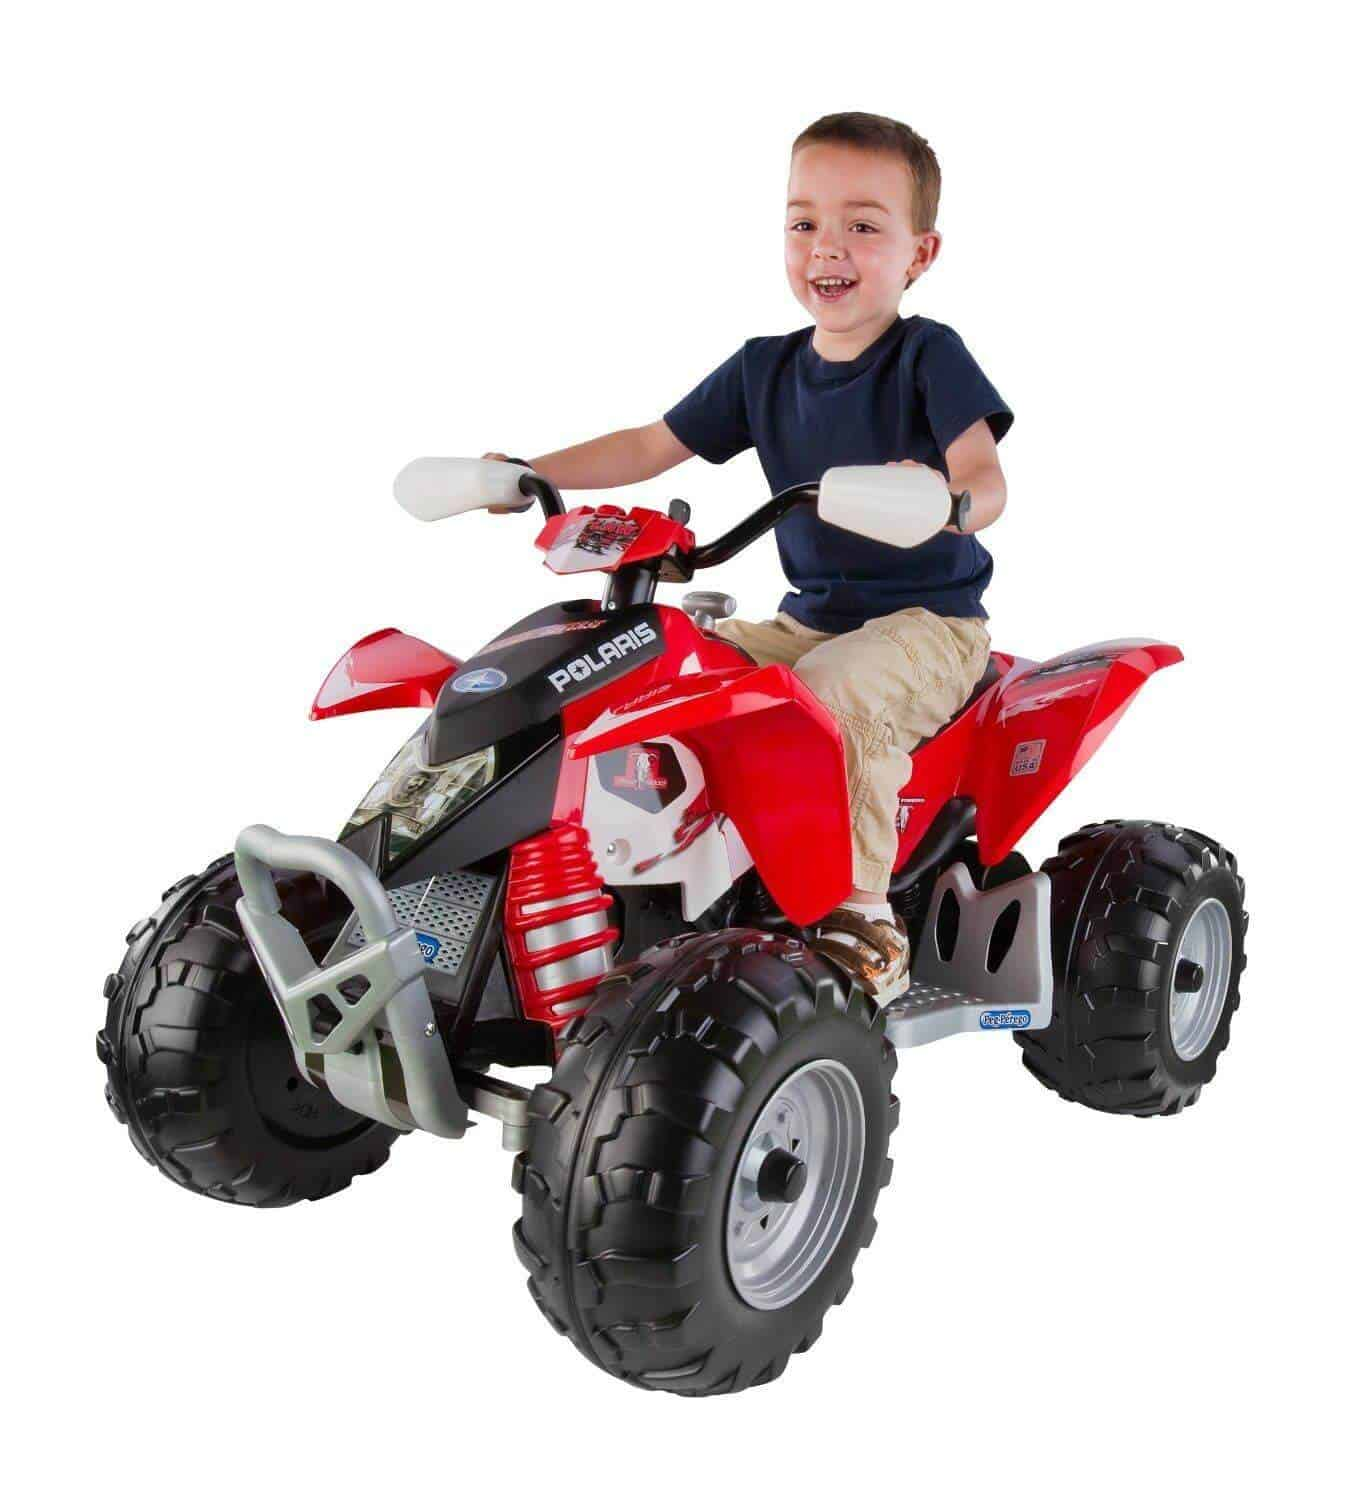 Peg Perego Ride On Toys >> Peg Perego Atvs For Kids Top Models Reviewed